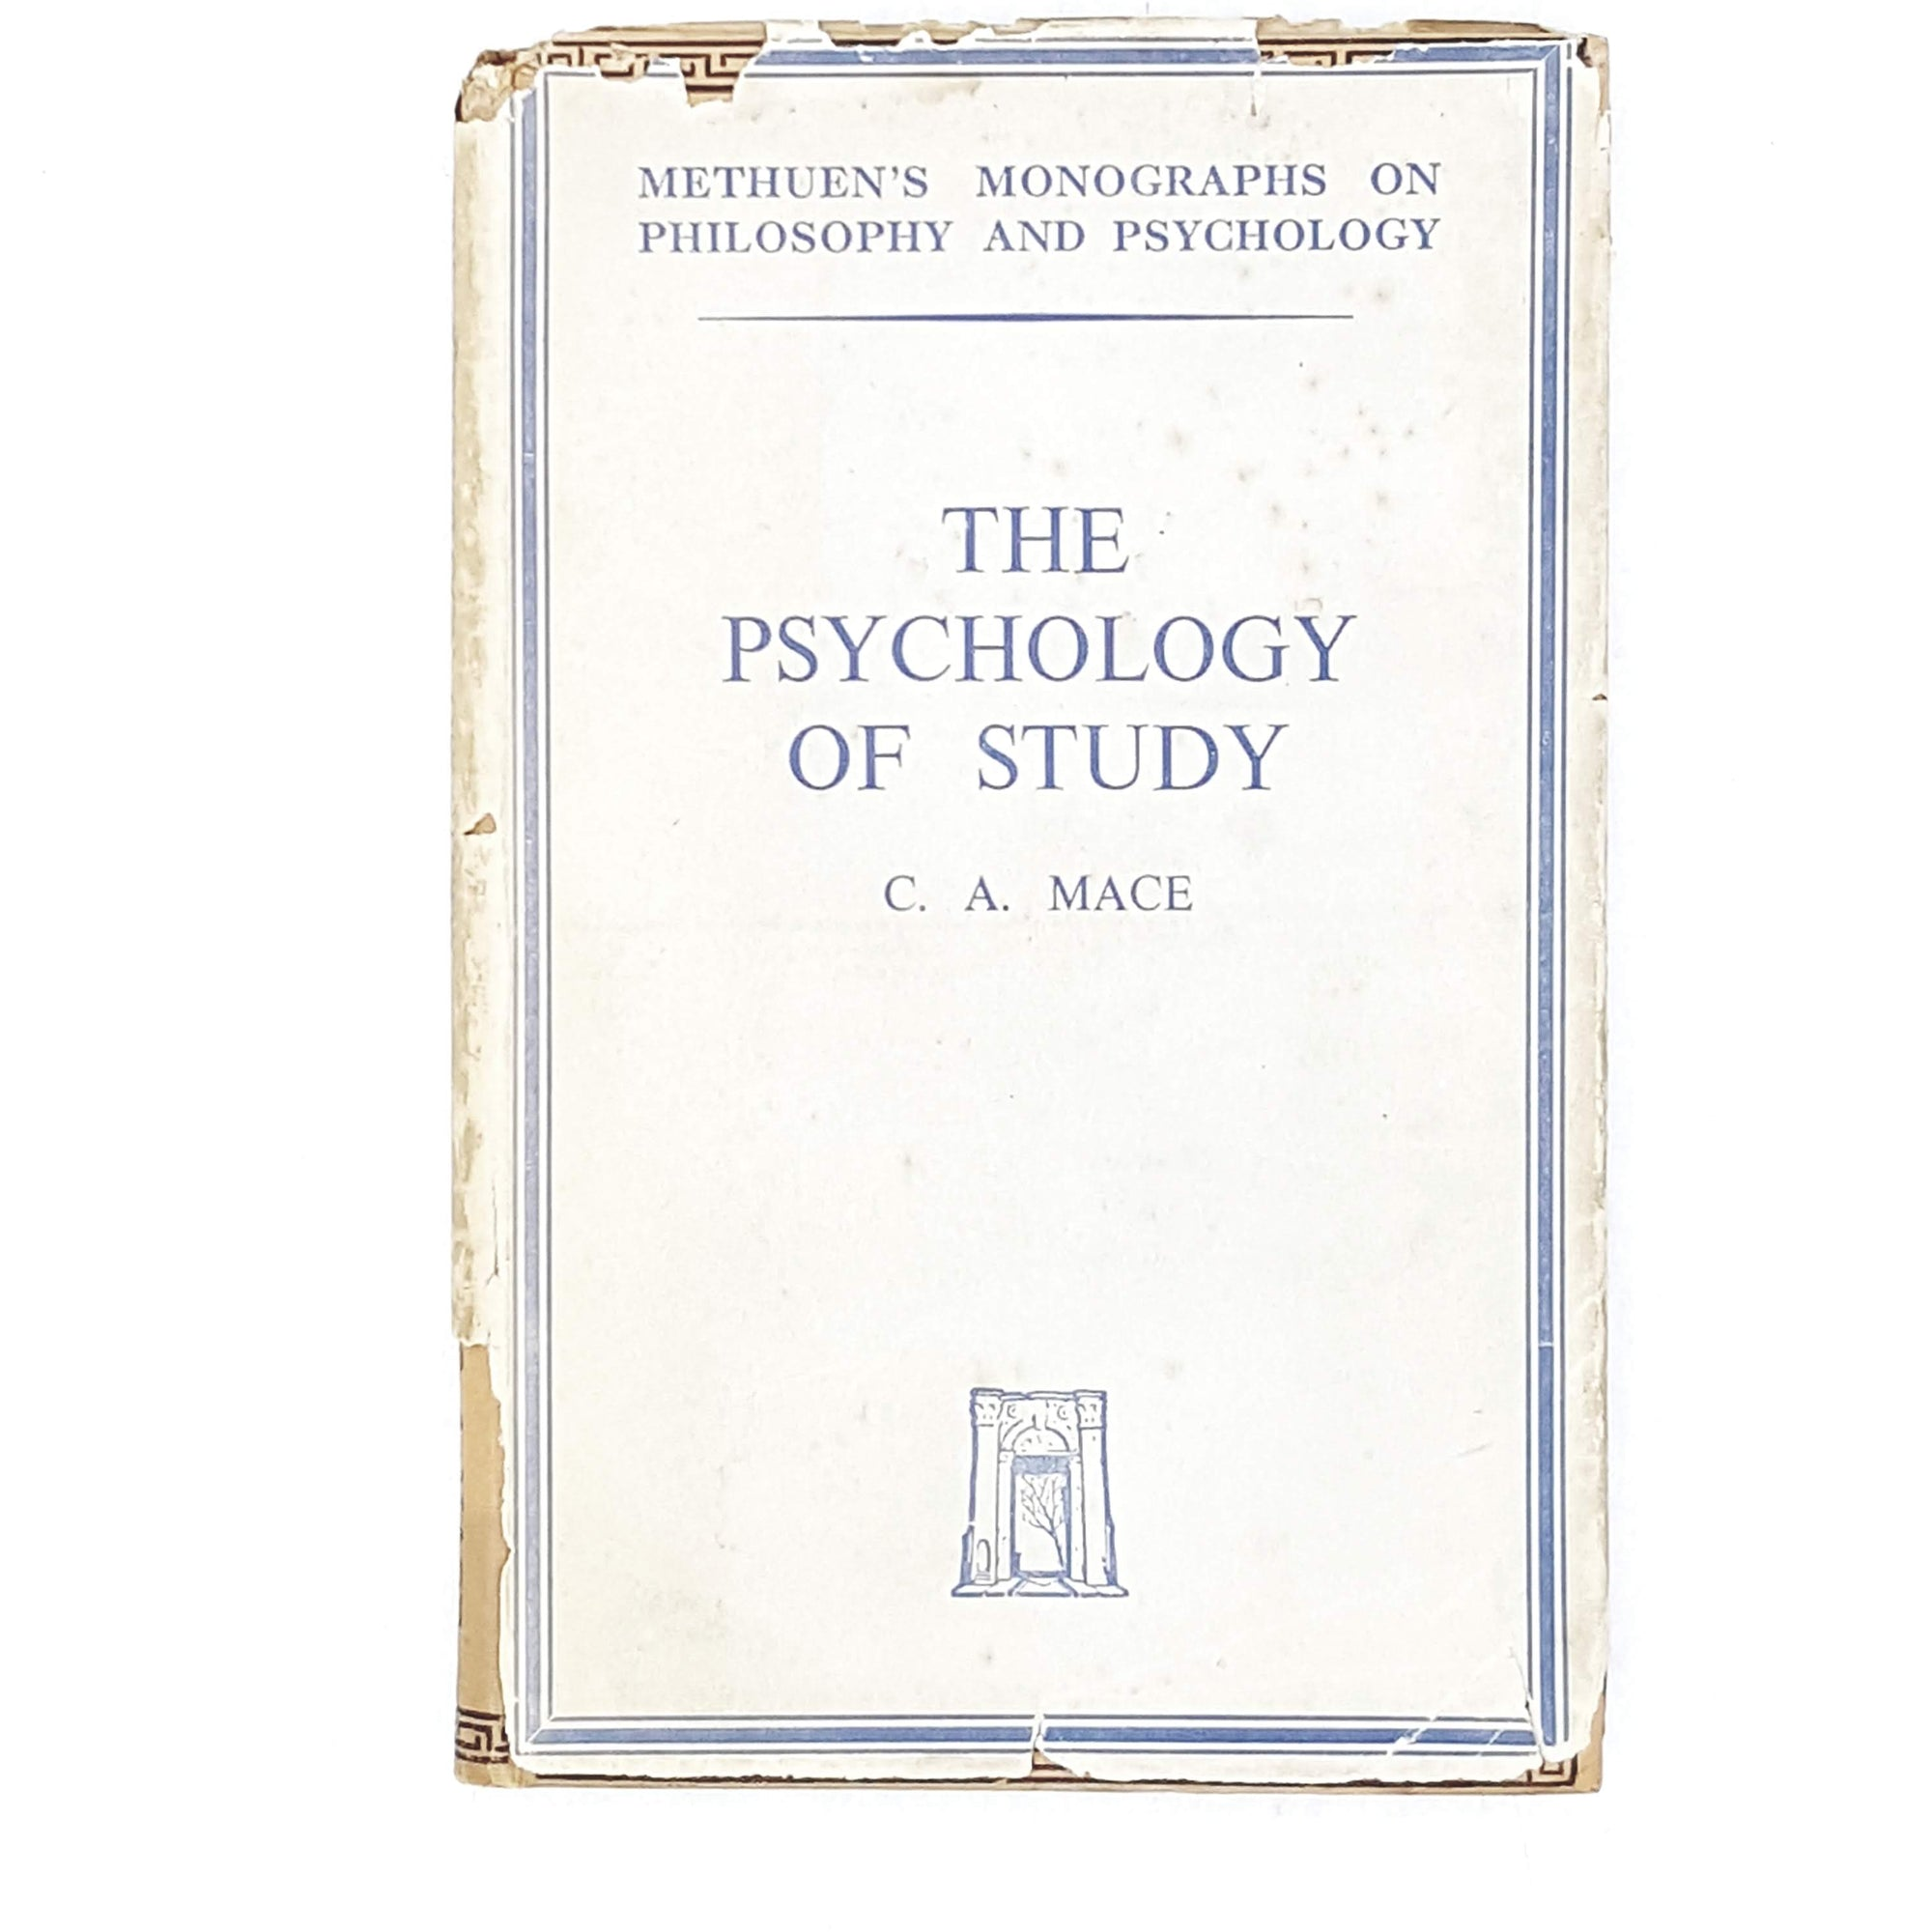 The Psychology of Study by C. A . Mace 1949